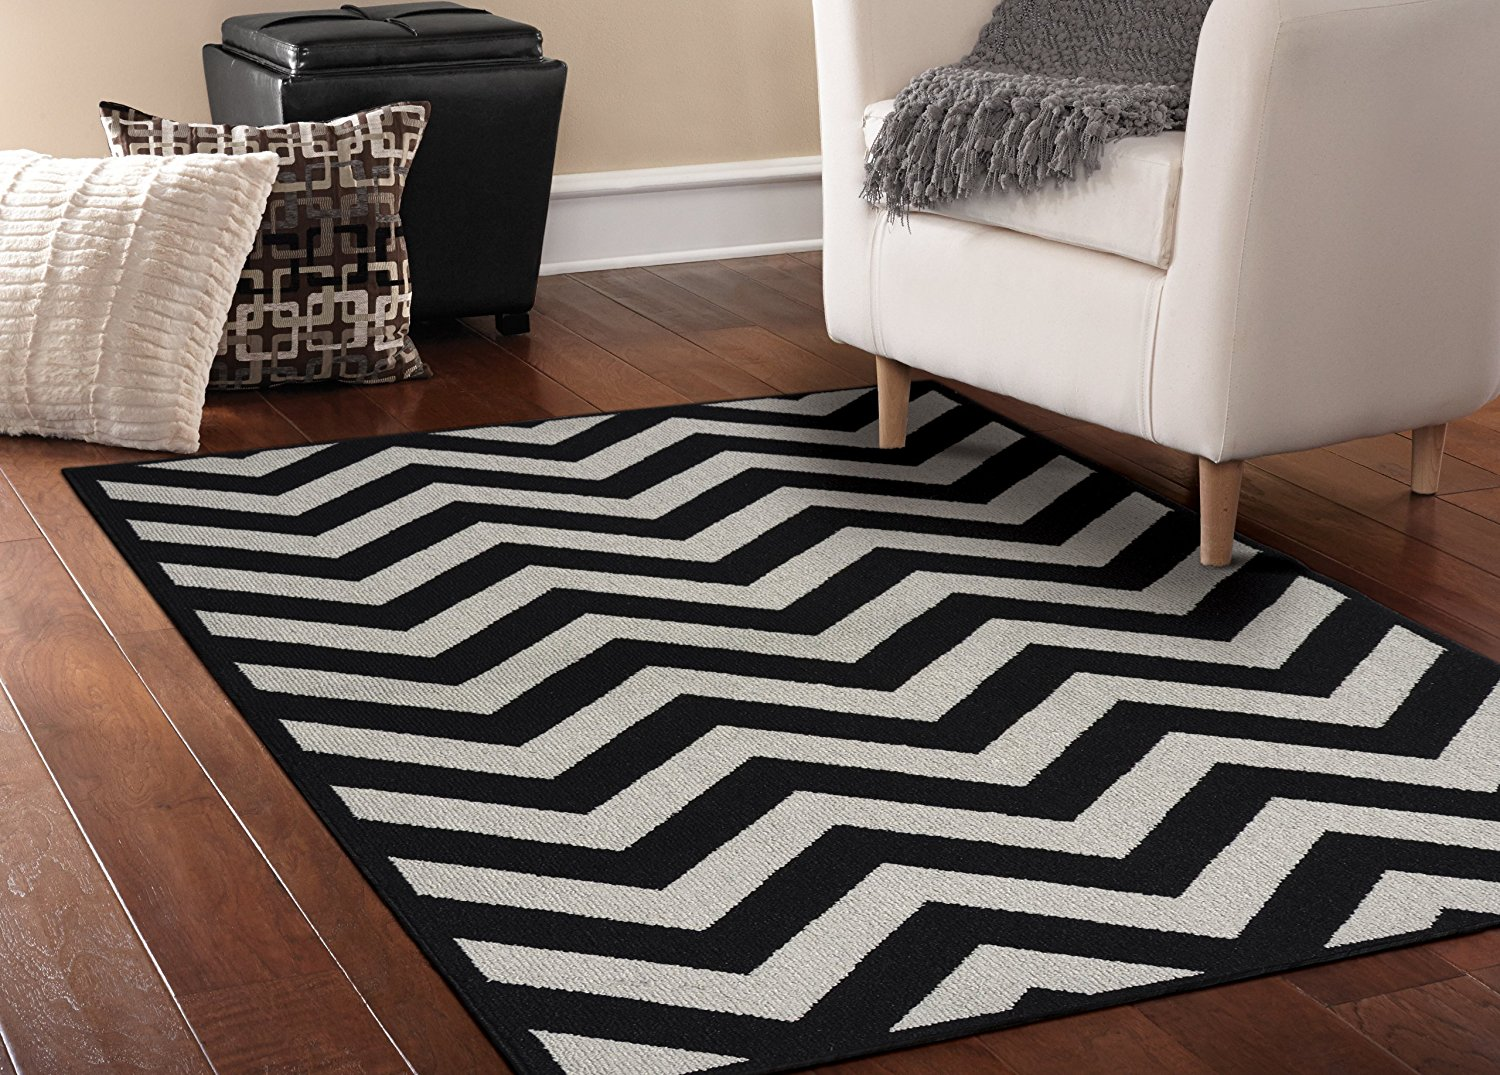 dorm rugs, chevron rugs